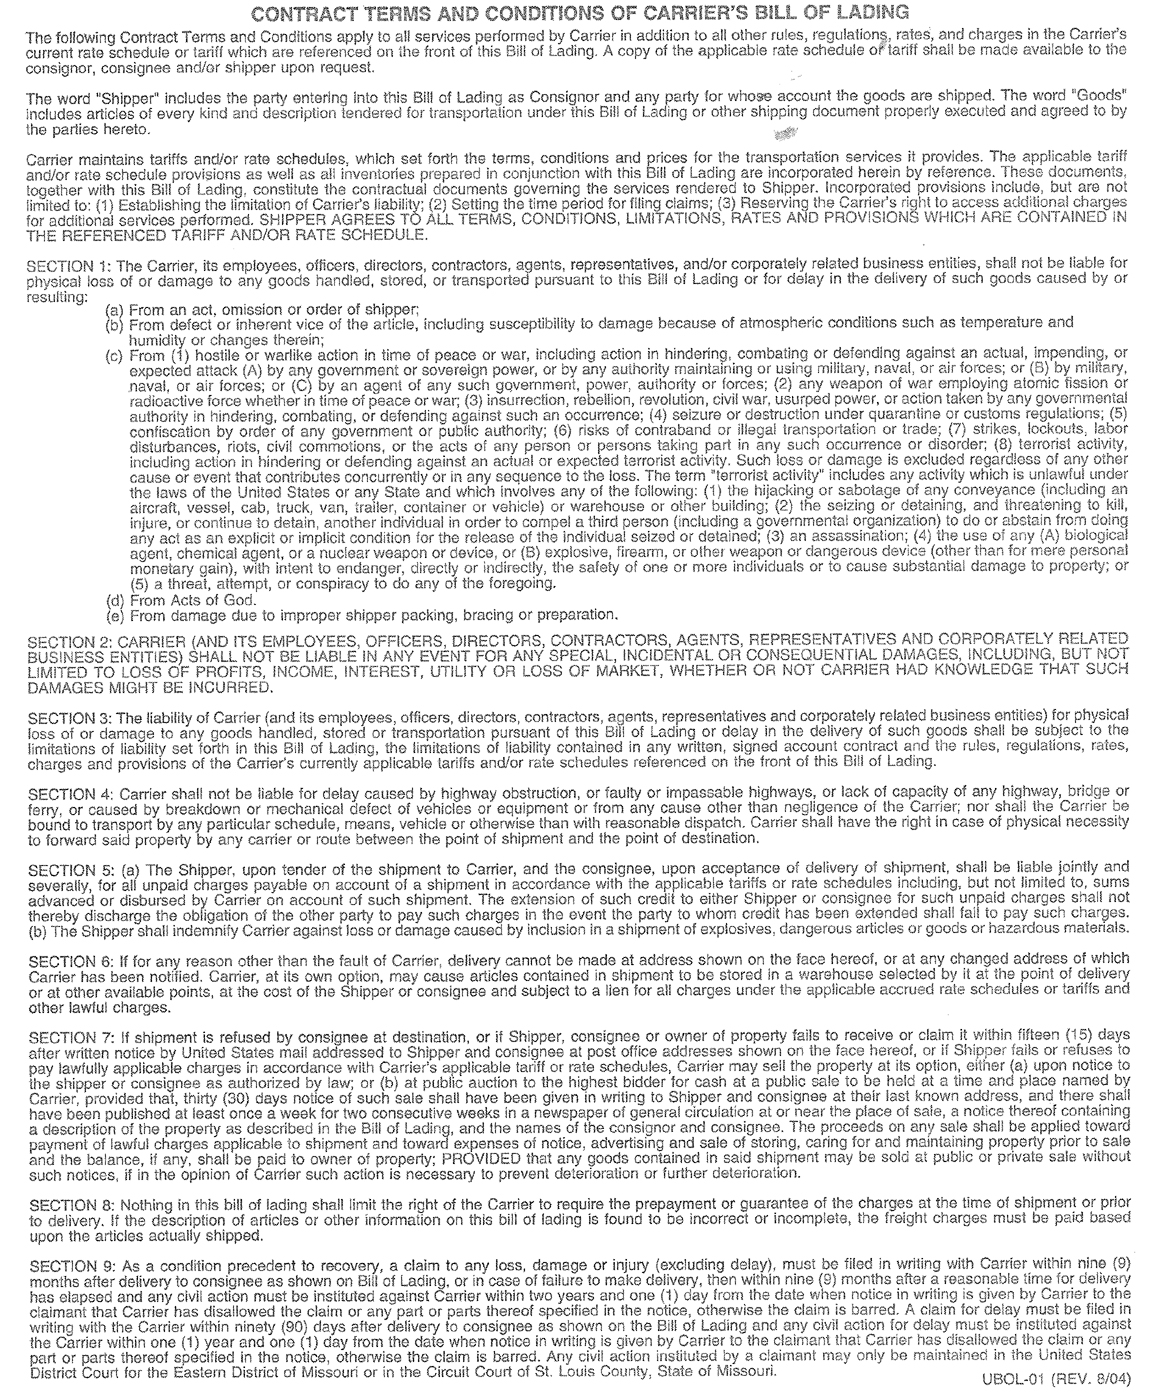 contract_terms_and_conditions_of_carriers_bill_of_landing